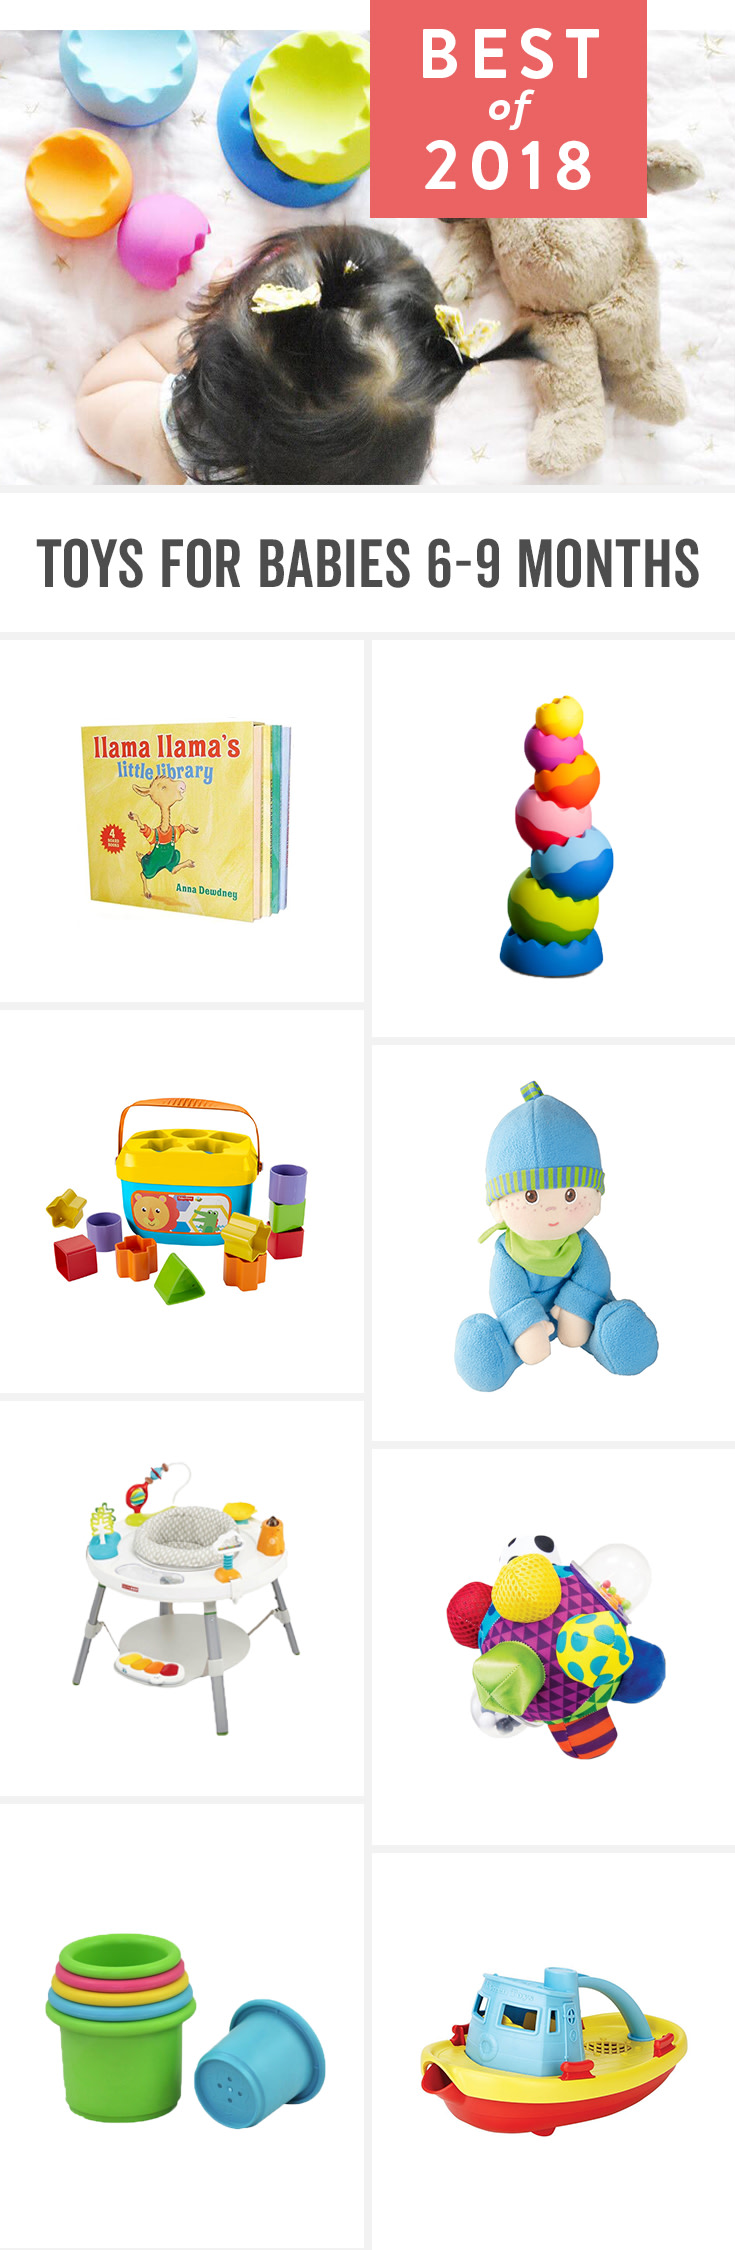 Babies start to develop a real interest in the world around 6 months and grow quickly emotionally, physically and cognitively between then and 9 months. These play toys for baby can help foster that development.